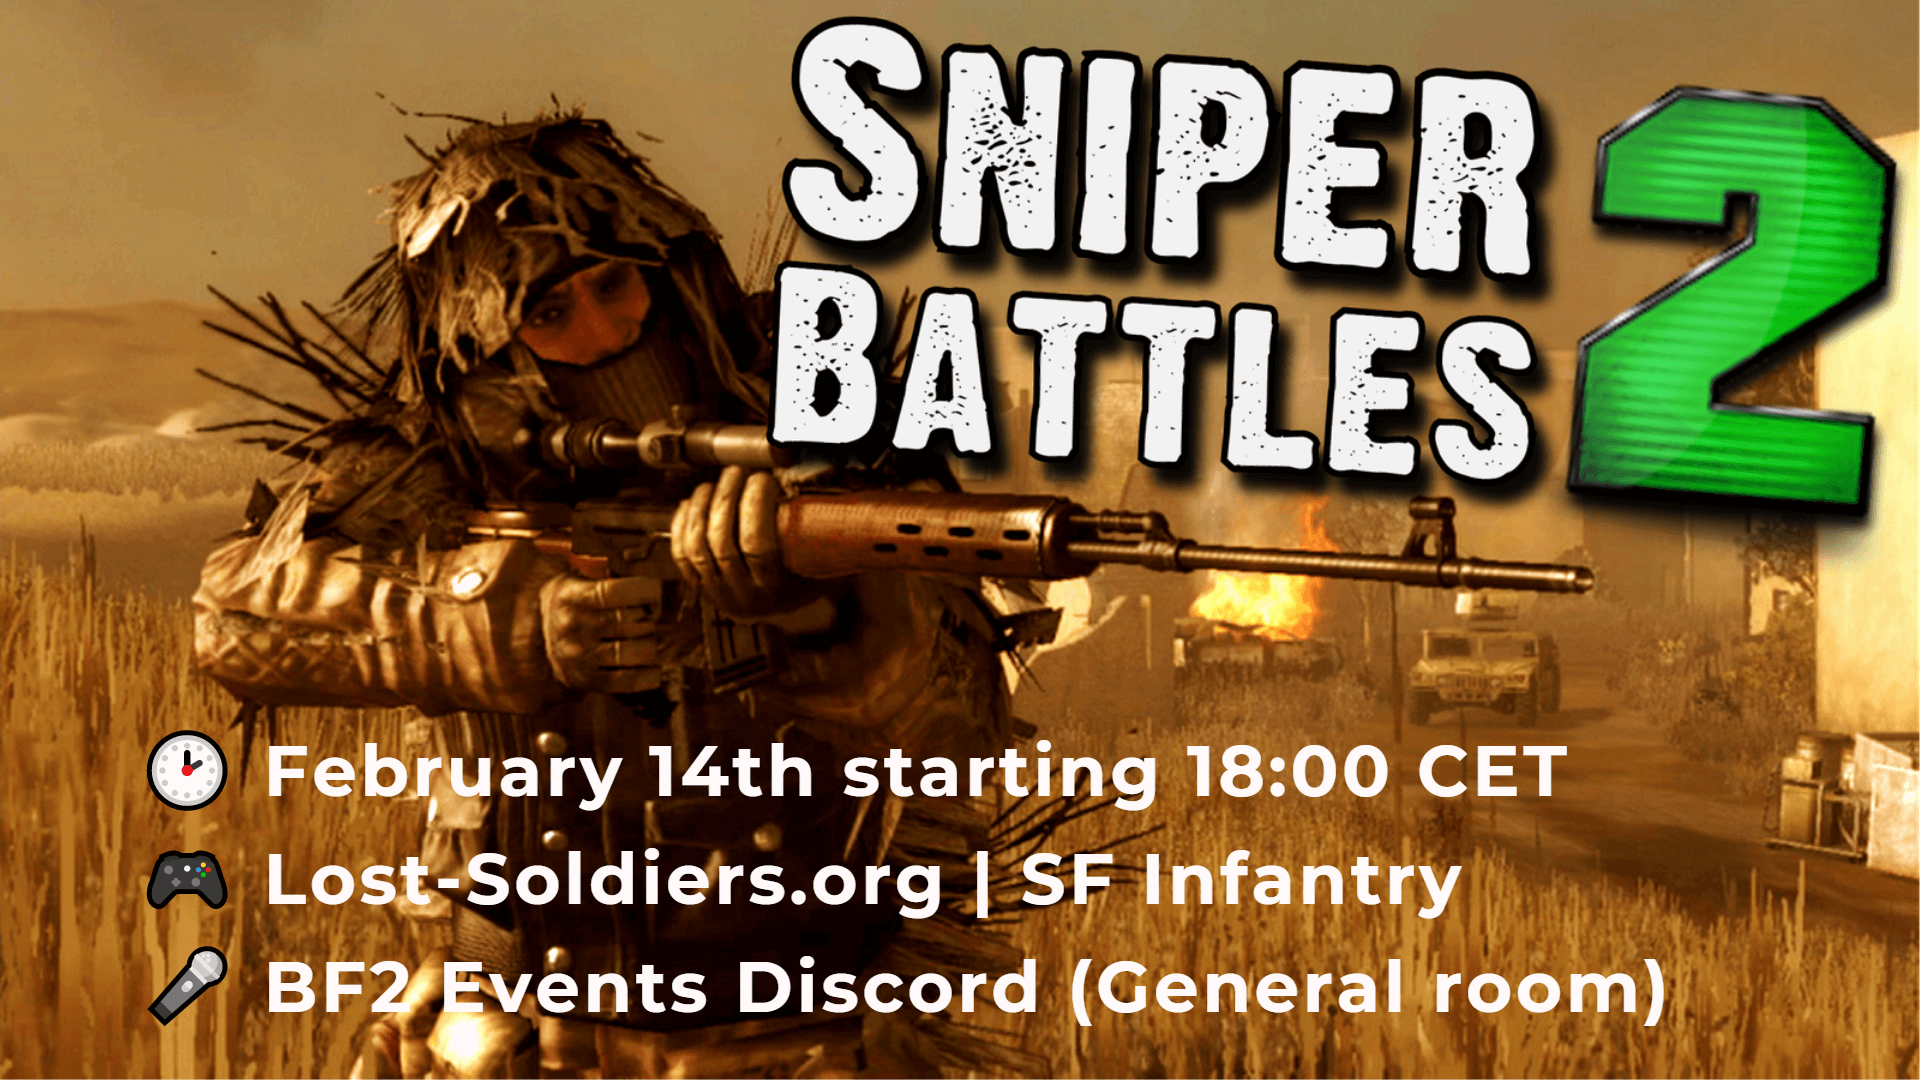 https://lost-soldiers.org/images/news-pics/SF-Sniper-Battles-2021-min.png